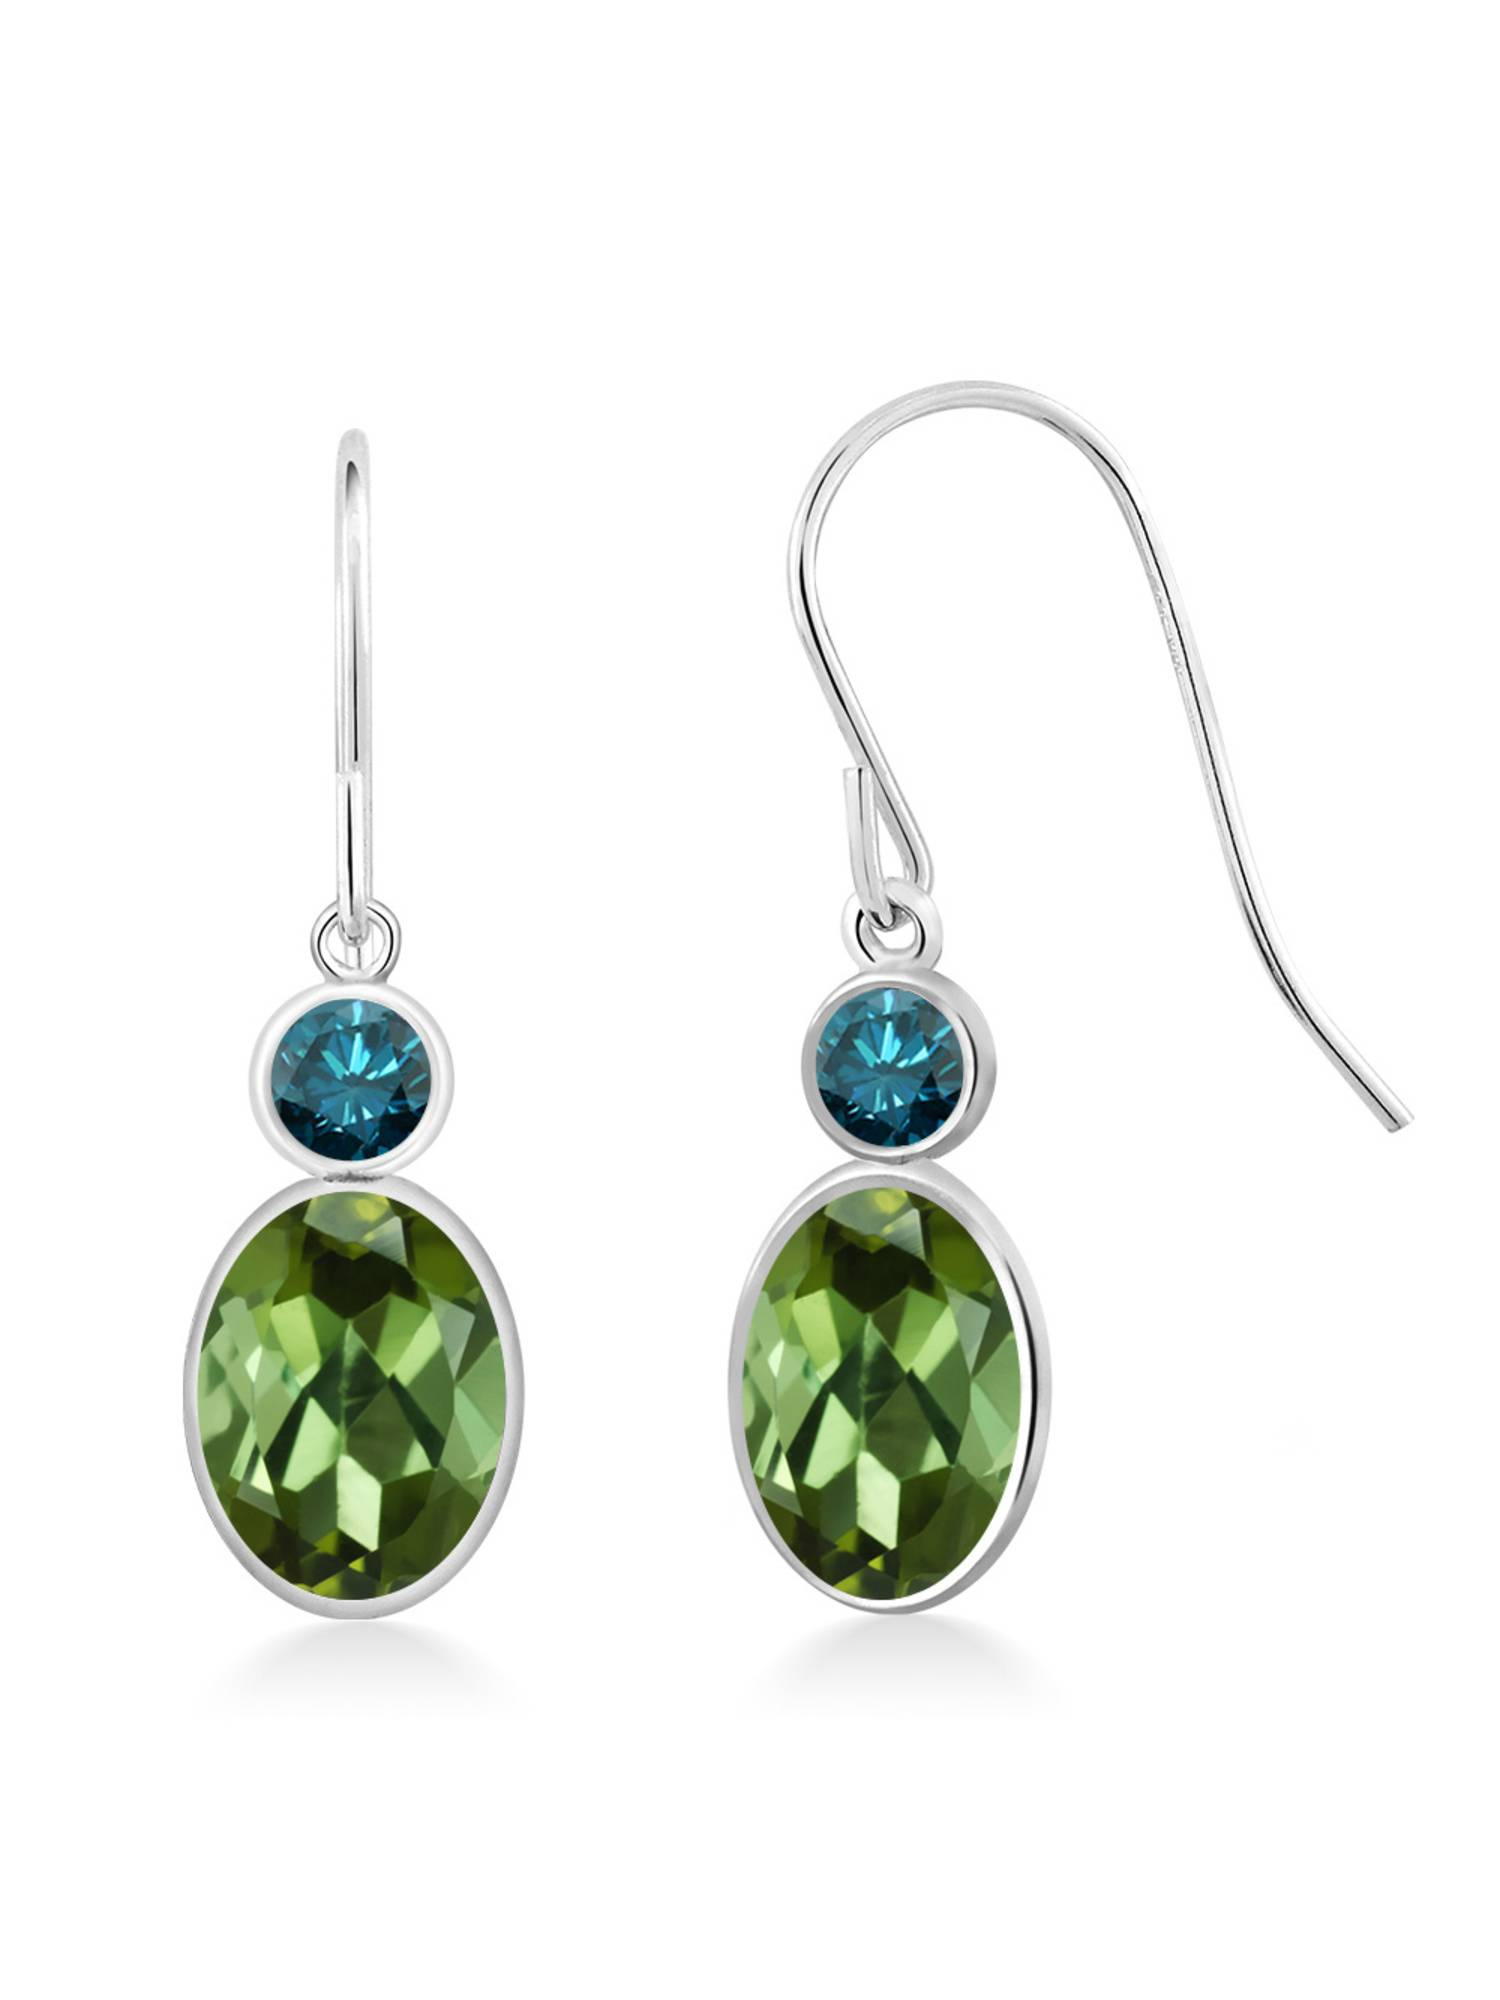 1.94 Ct Oval Green Tourmaline Blue Diamond 14K White Gold Earrings by